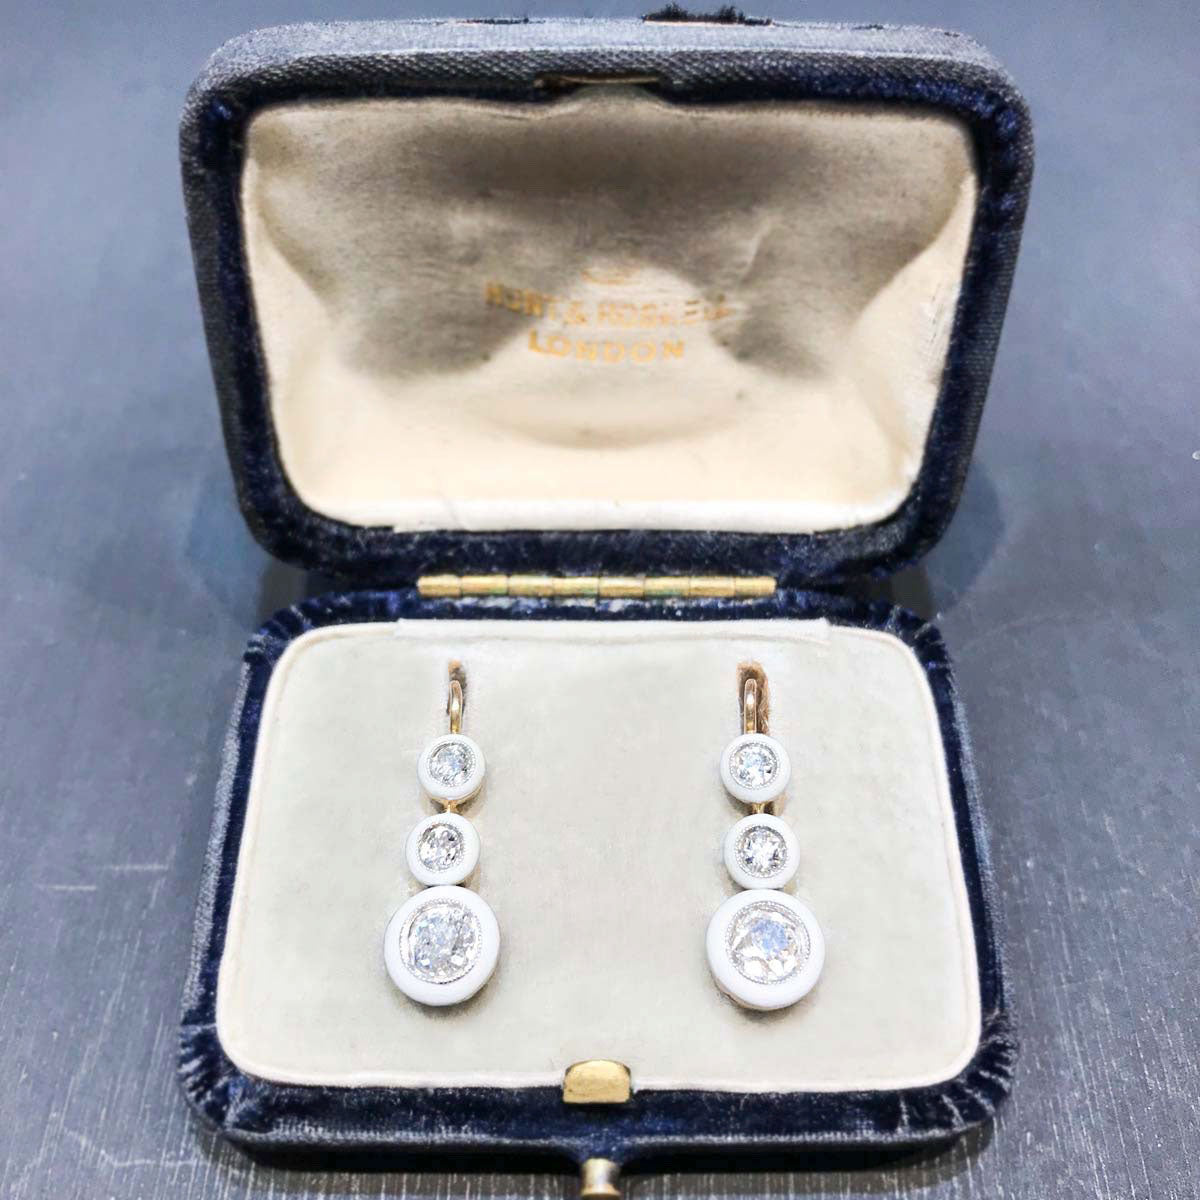 White enamel, 18ct gold, mine cut diamond, drop earrings c.1920s